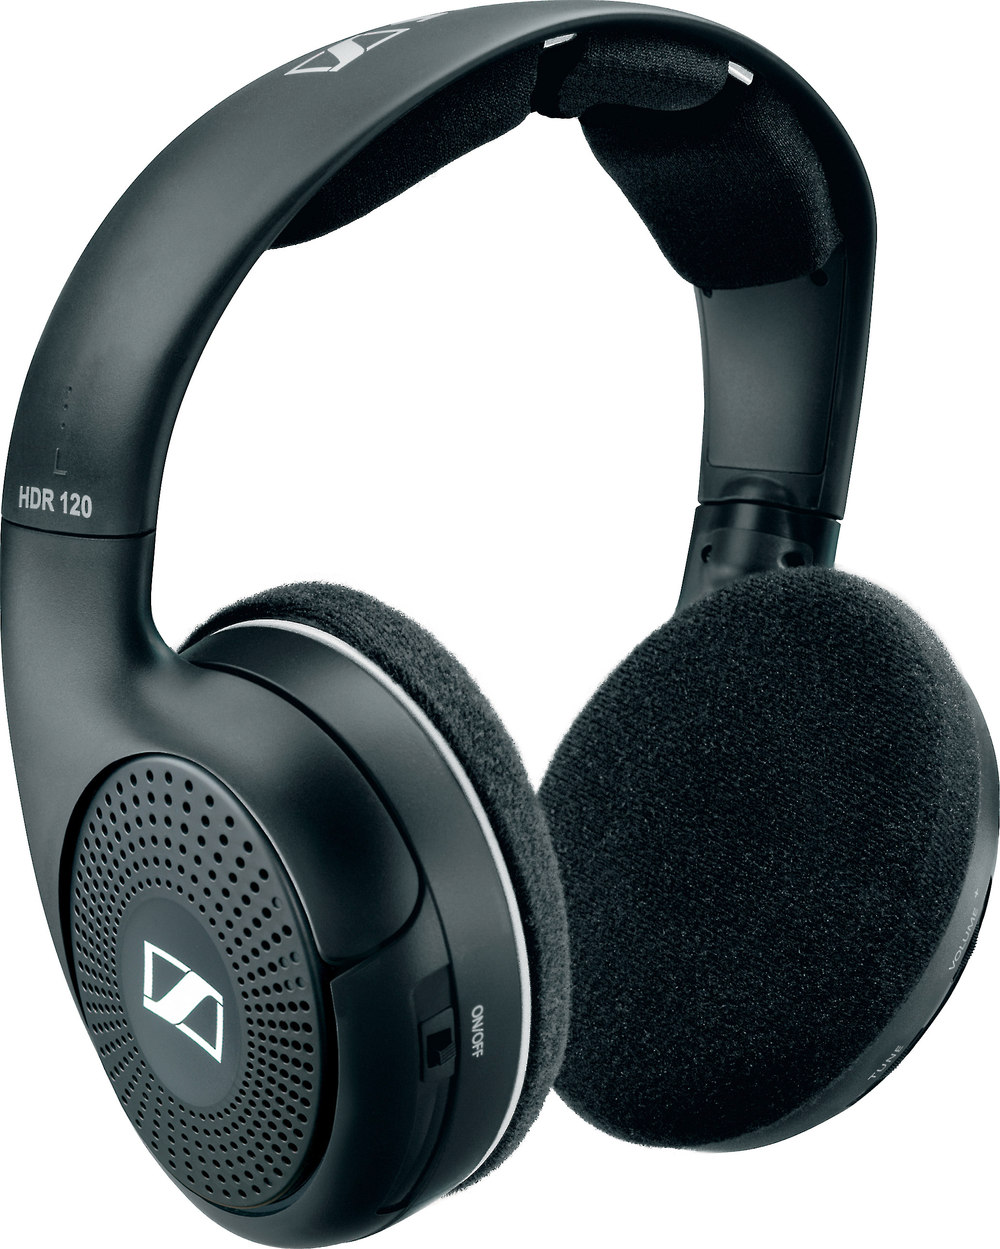 Sennheiser Rs 135 9 Wireless On Ear Headphones With Transmitter At Wiring Wall Volume Control Hdr 120